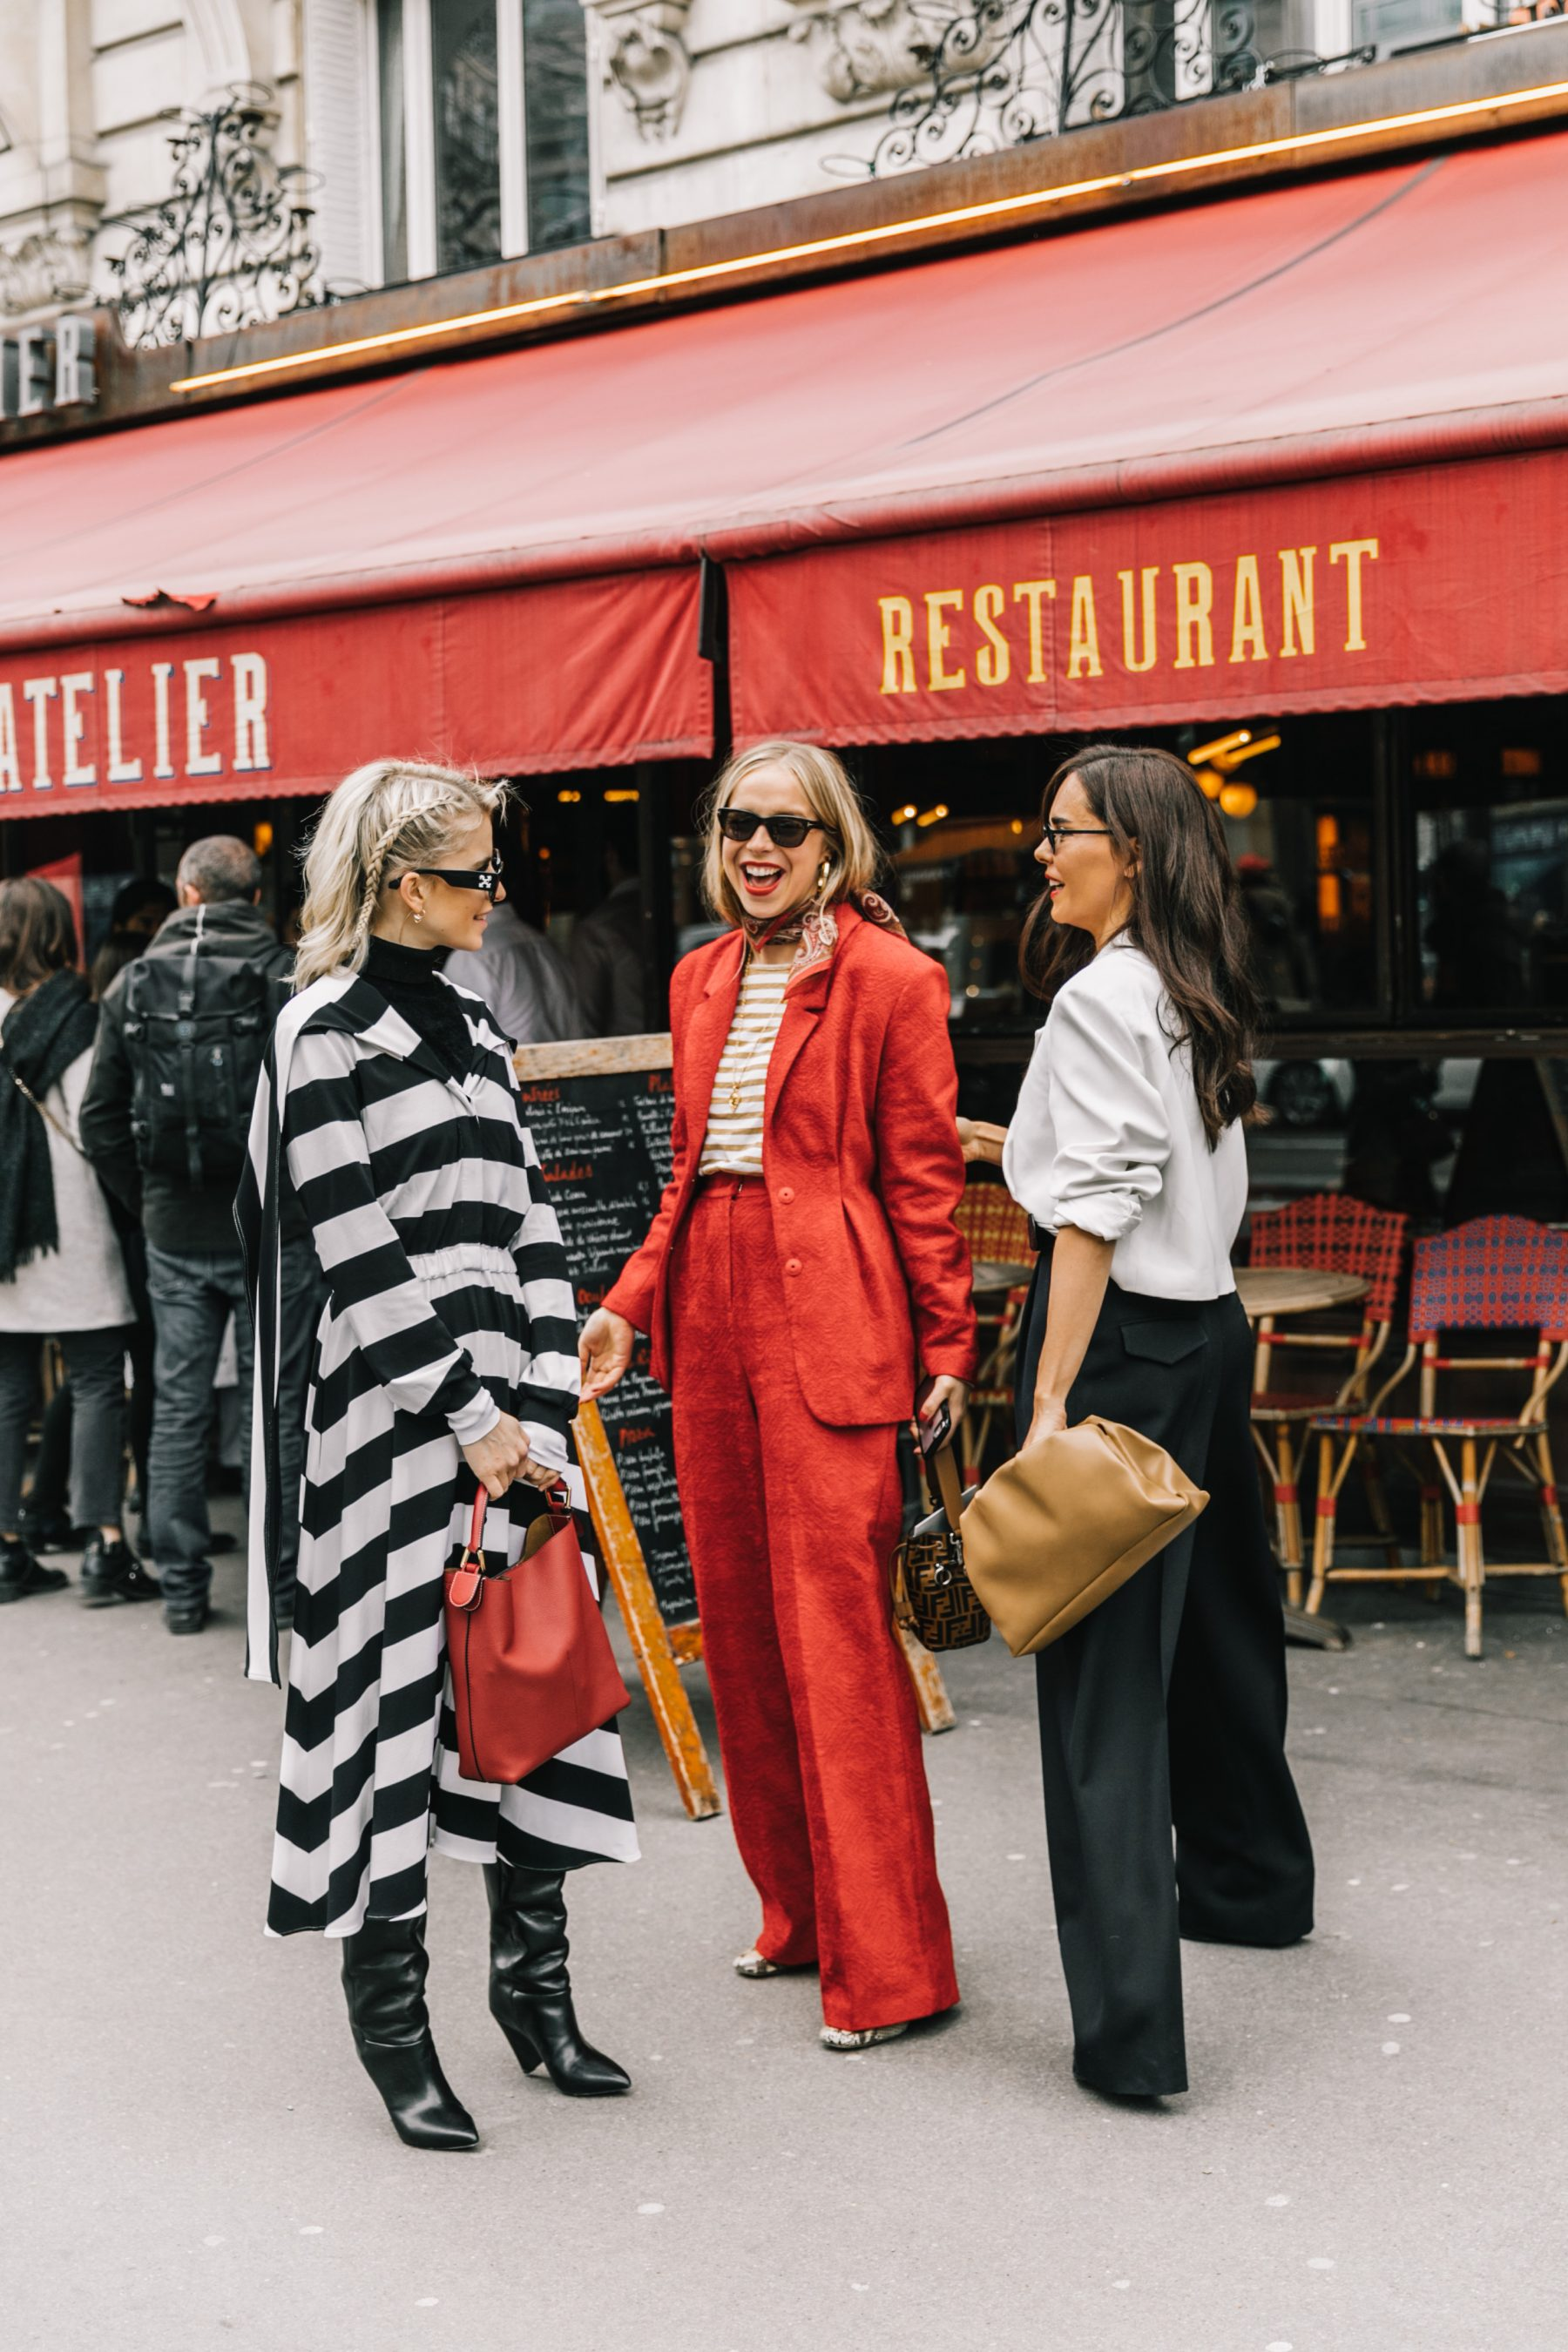 Street Style Paris Fashion Week Fall Winter 2018 Imagina O F Rtil